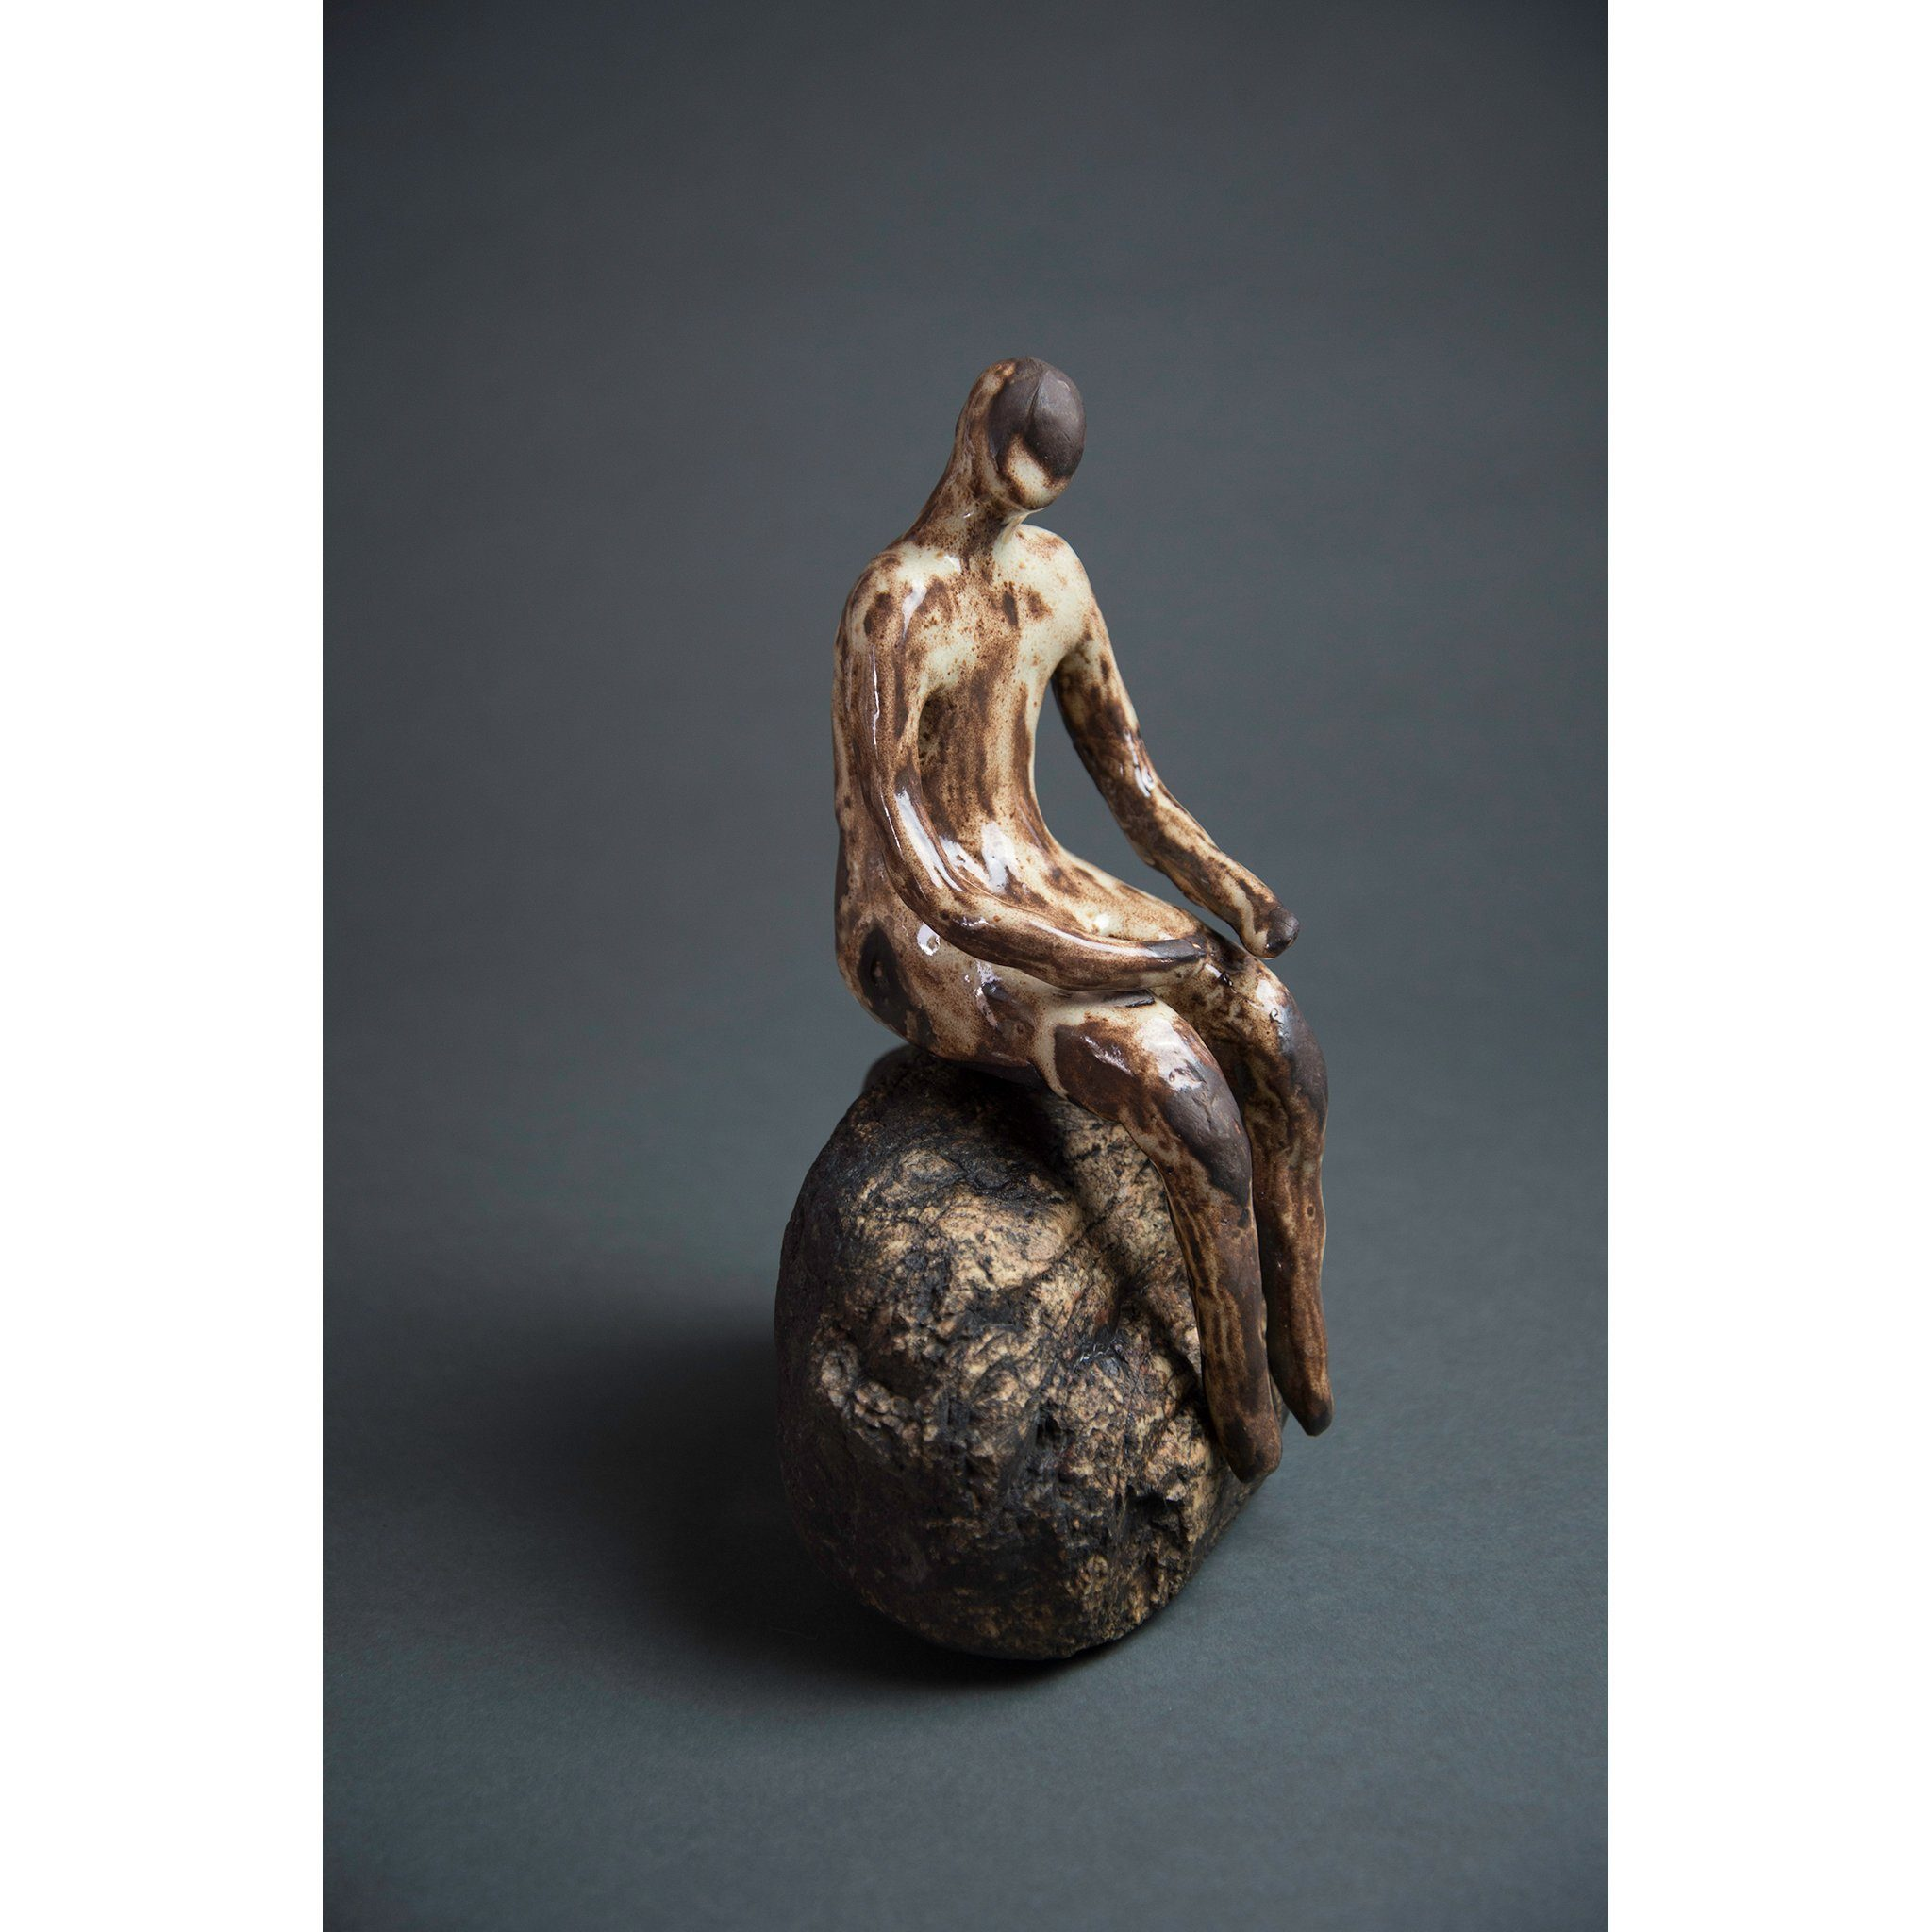 Man on Rock 2,  New Mexico Chocolate clay, Shino, glaze and river rock, 10.75x6x5, view 3.